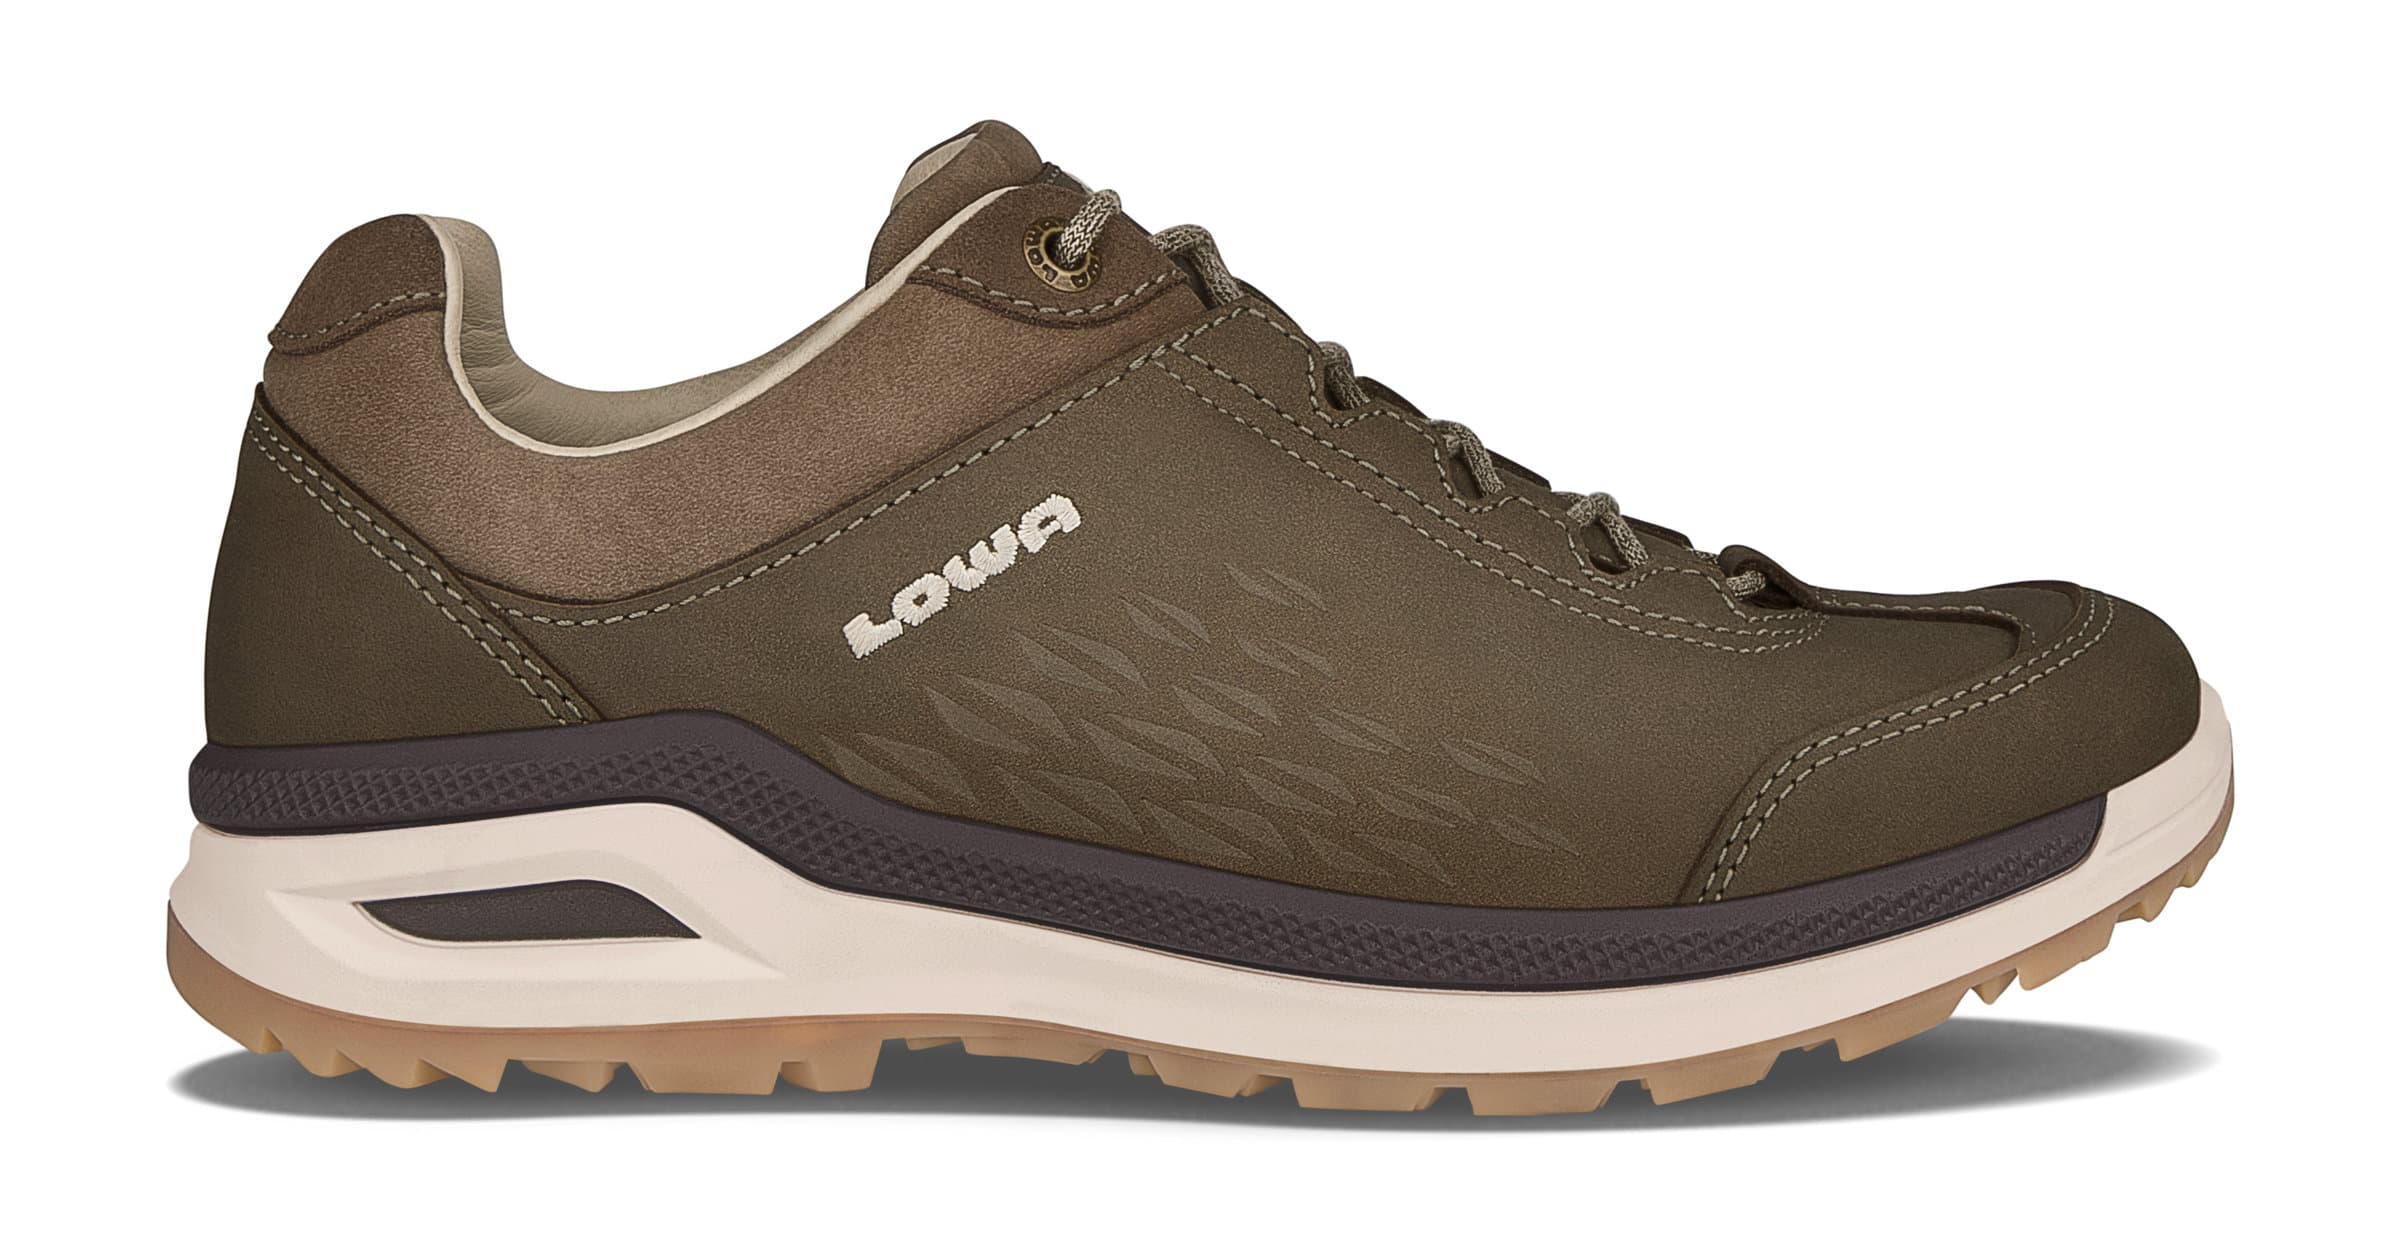 Lowa Strato Evo LL Lo Chaussures polyvalentes pour femme